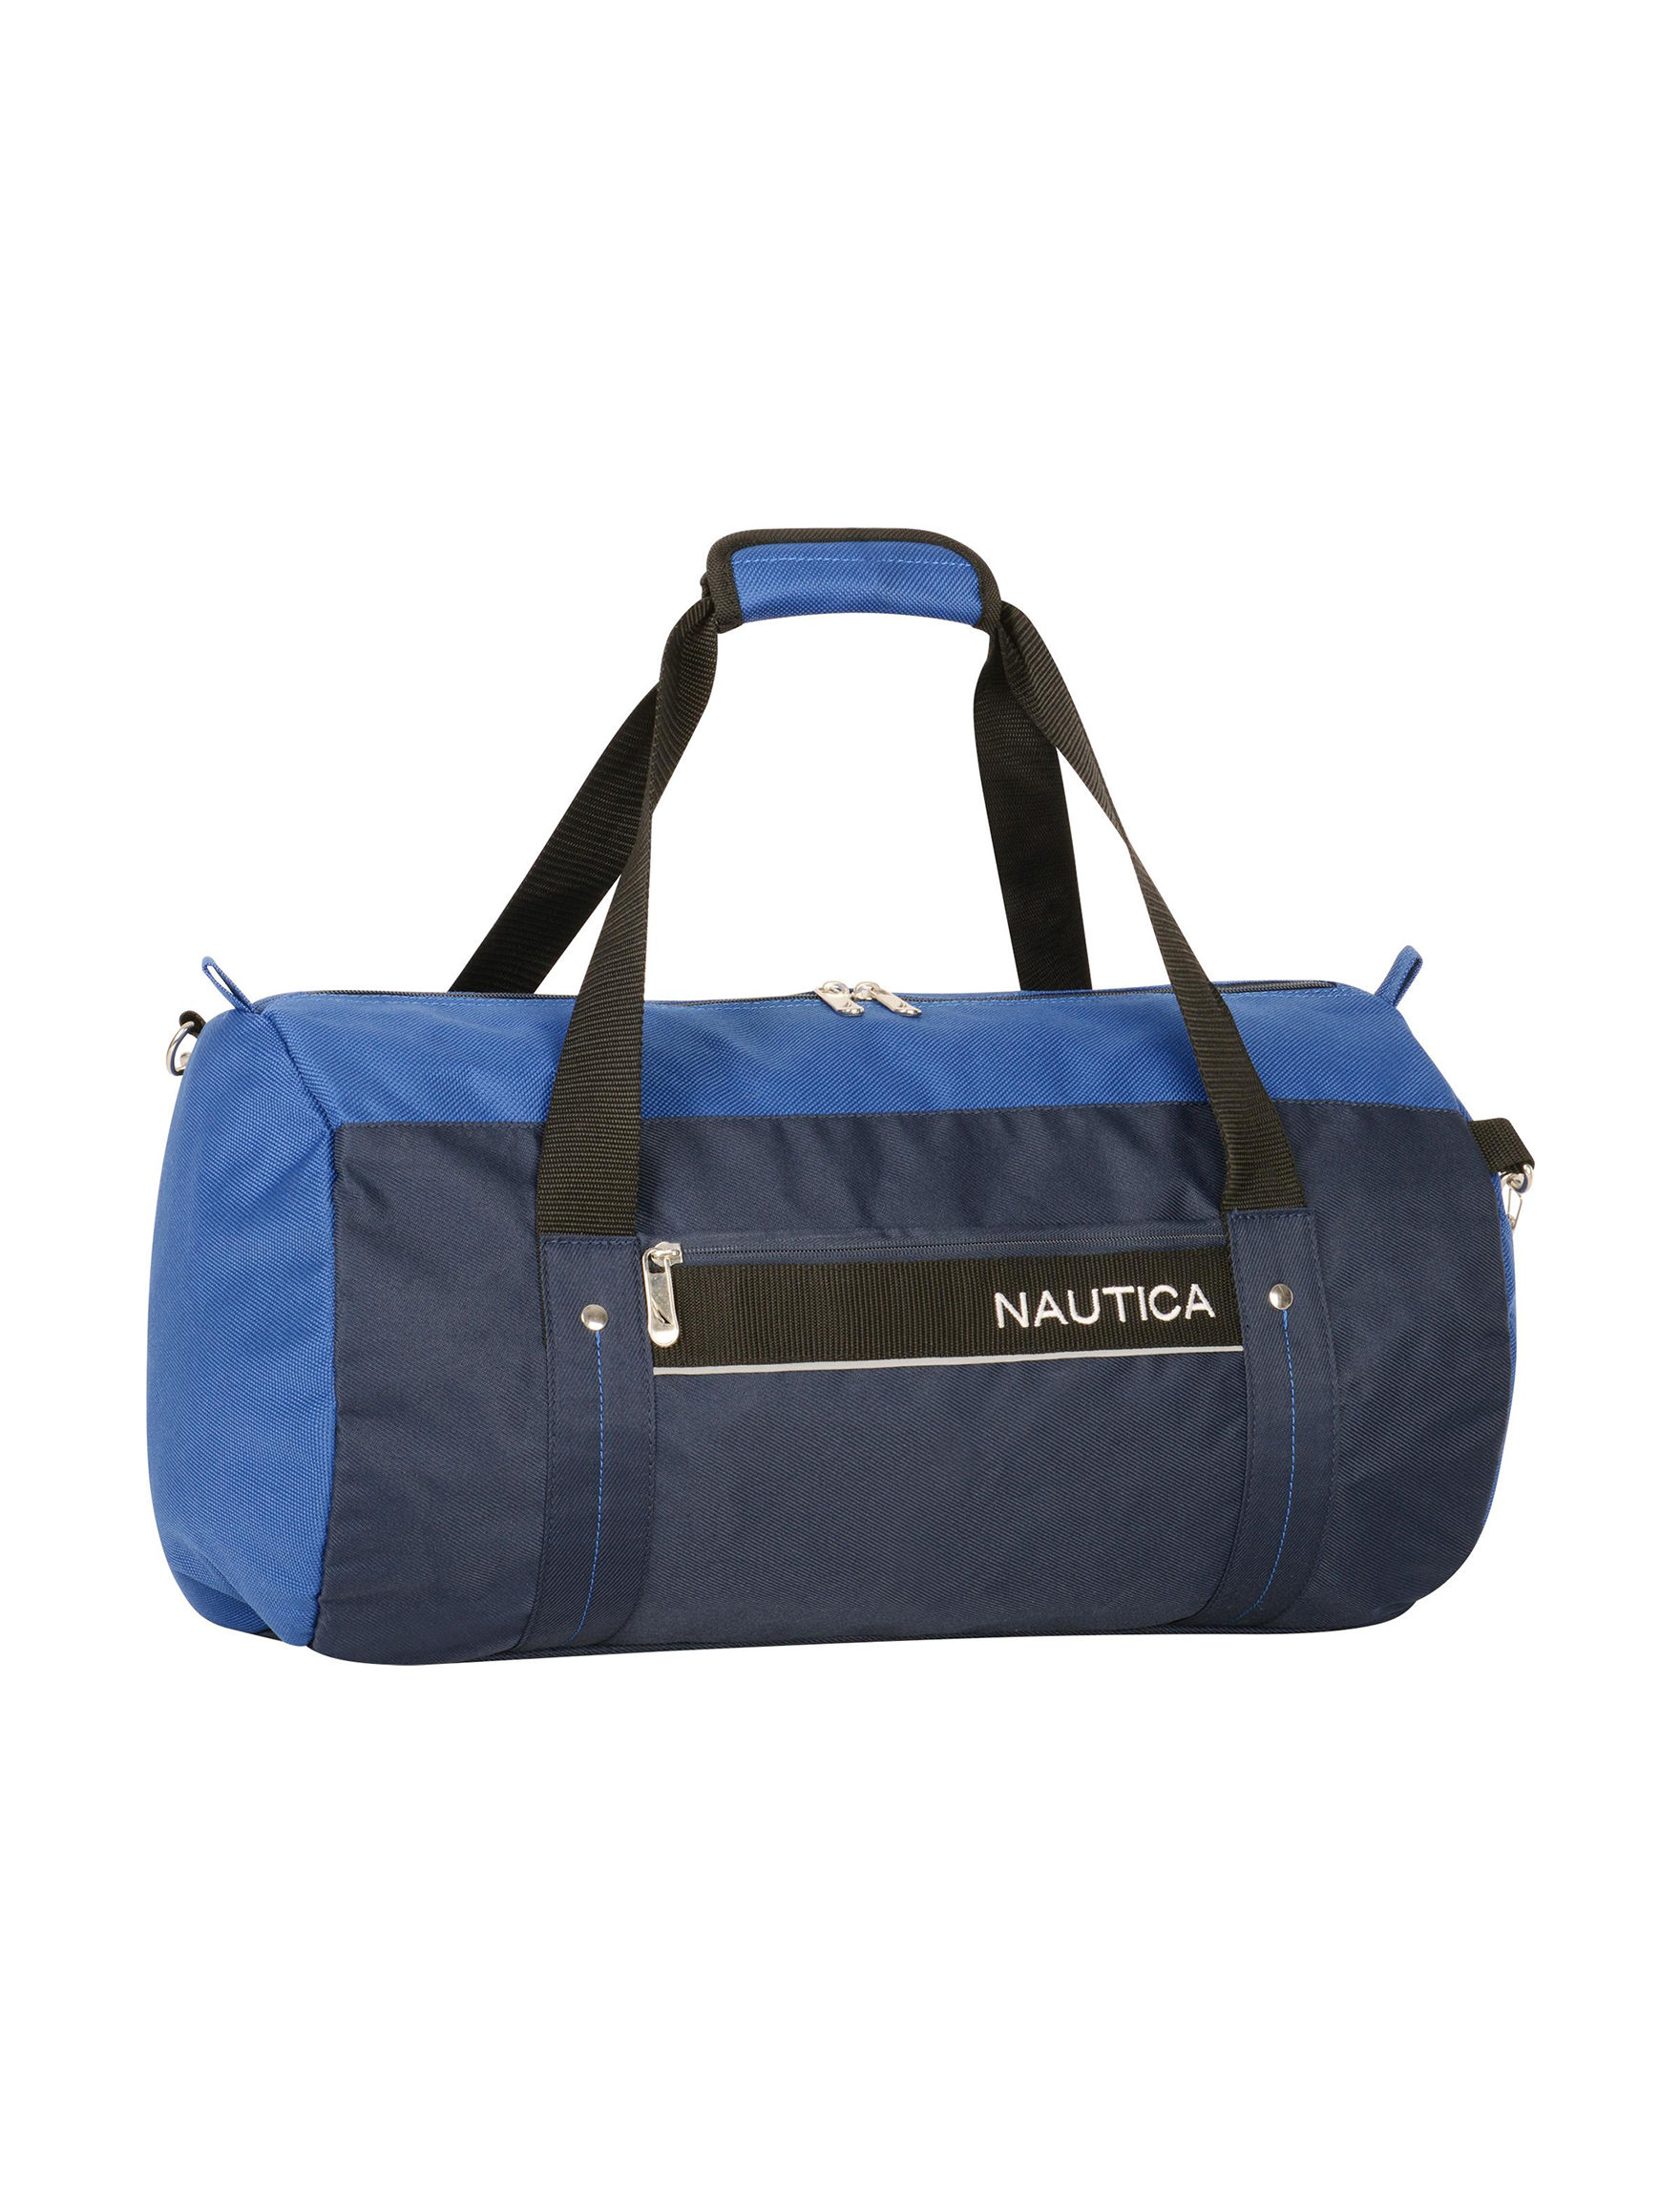 Nautica Navy / Blue Carry On Luggage Duffle Bags Travel Accessories